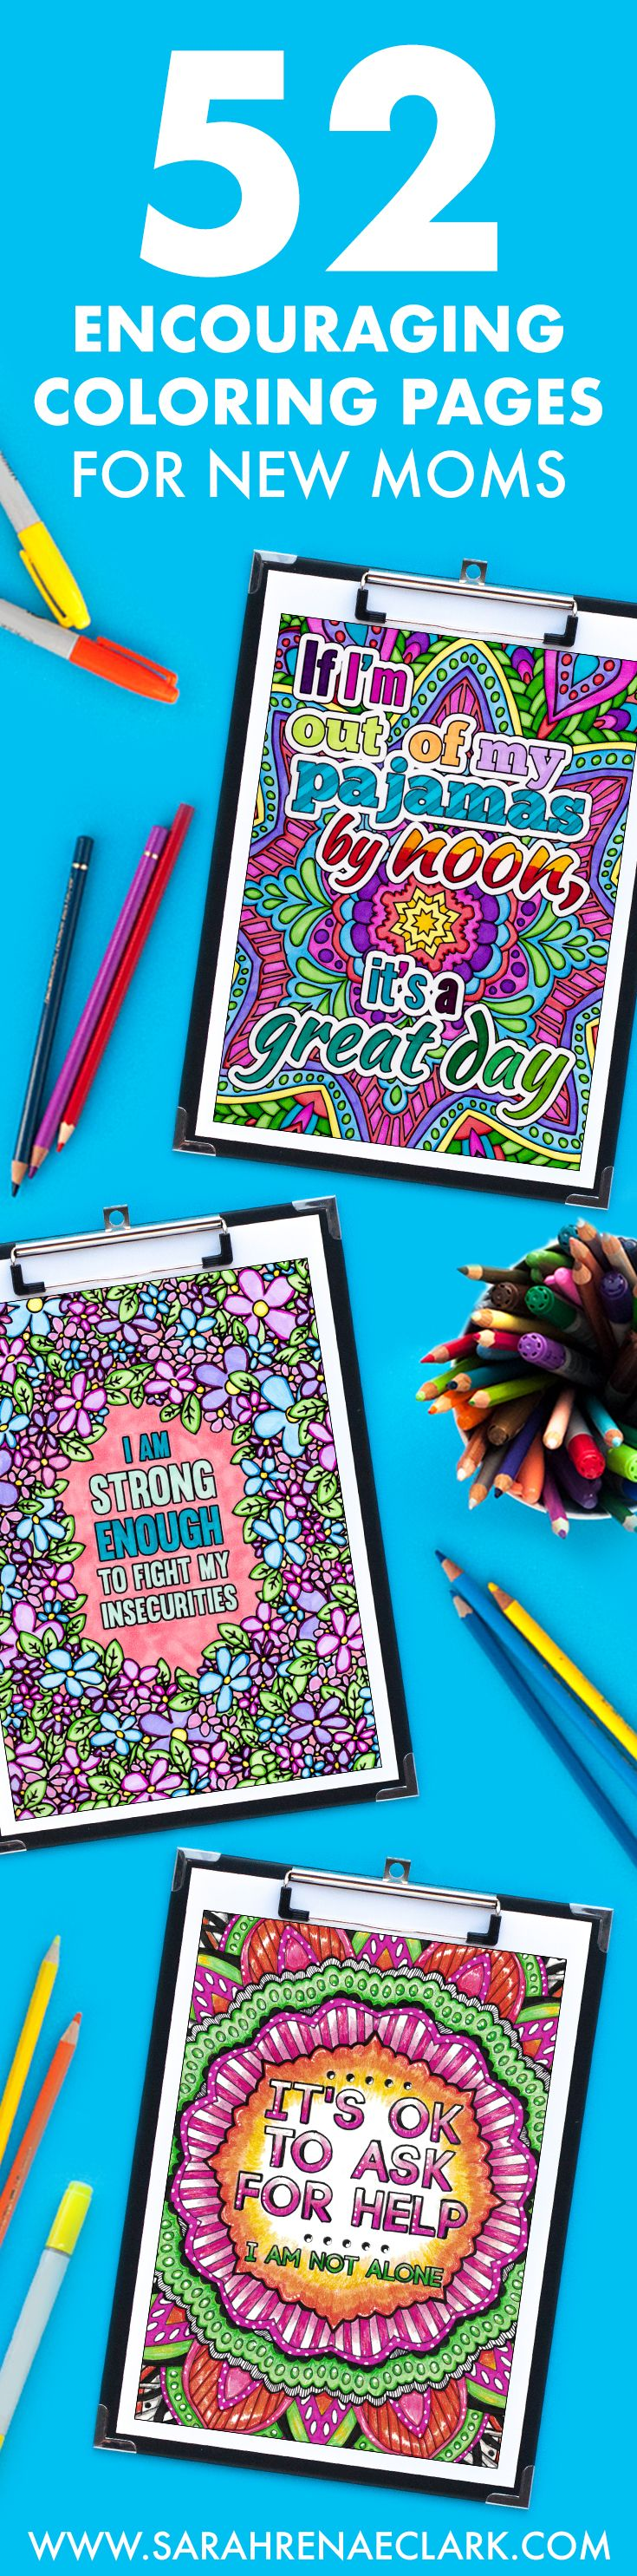 Enjoy a moment of relaxation that fits around your schedule as a new mom. The 52 coloring pages in this coloring book for new moms is the perfect self-care alternative that encourages you as a mom and nurtures your creative side. Click to find out more!